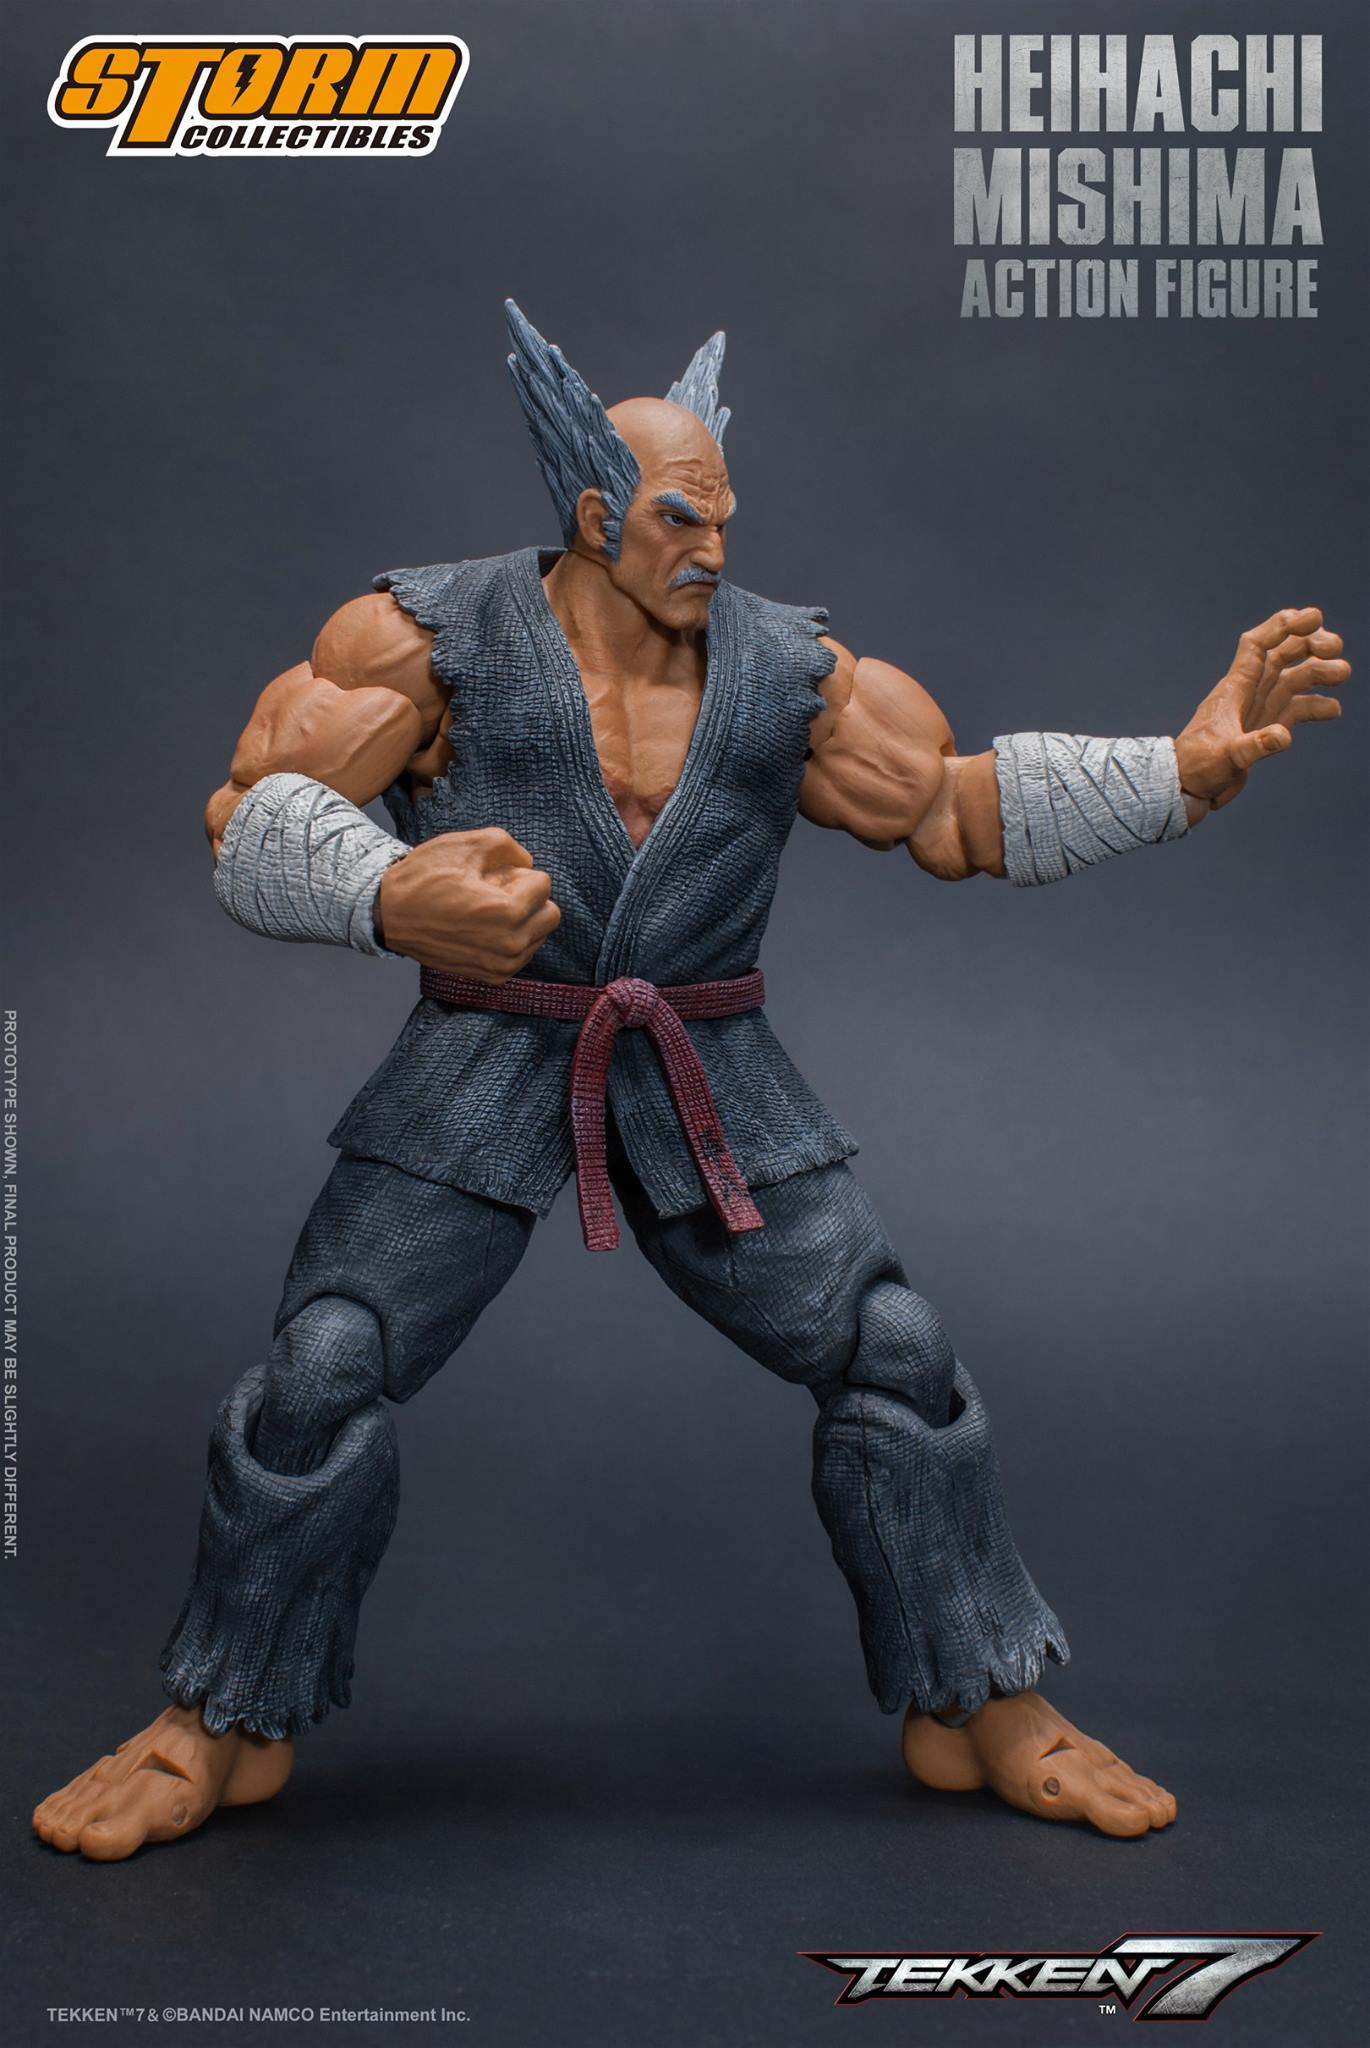 Heihachi Mishima Tekken 7 Action Figure By Storm Collectibles Now Available For Pre Order Tekkengamer